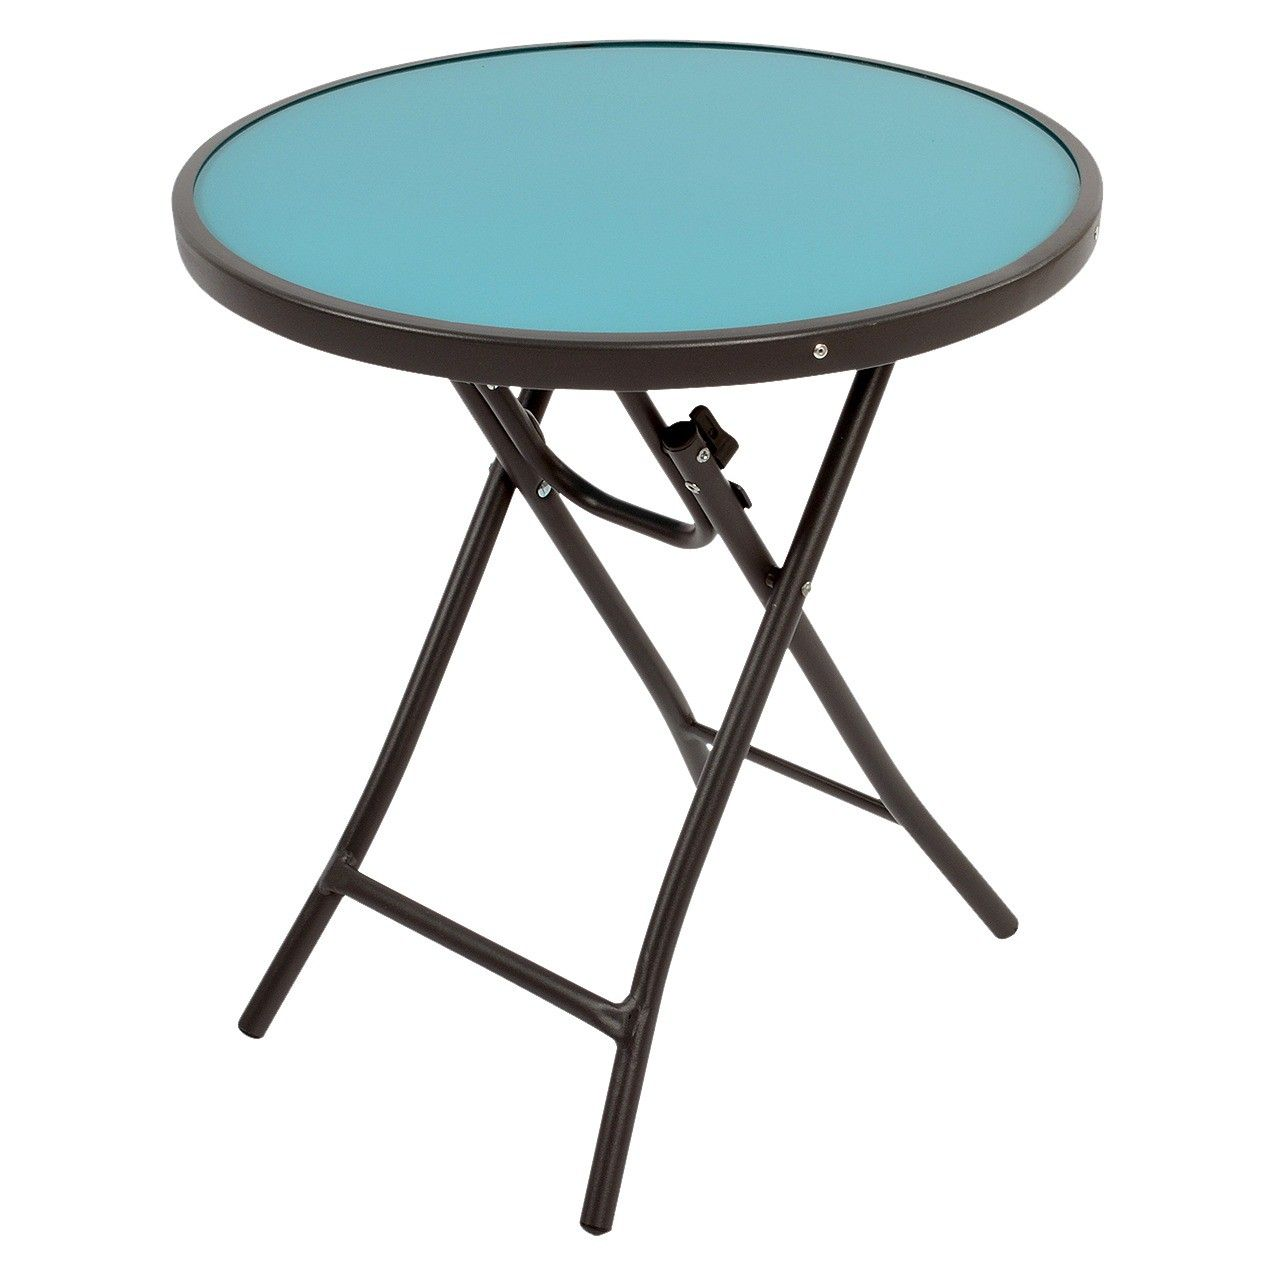 bistro accent table turq target patio patios room essentials turquoise duvet outside umbrellas white farmhouse kitchen small round entry red asian lamp meyda tiffany ceiling